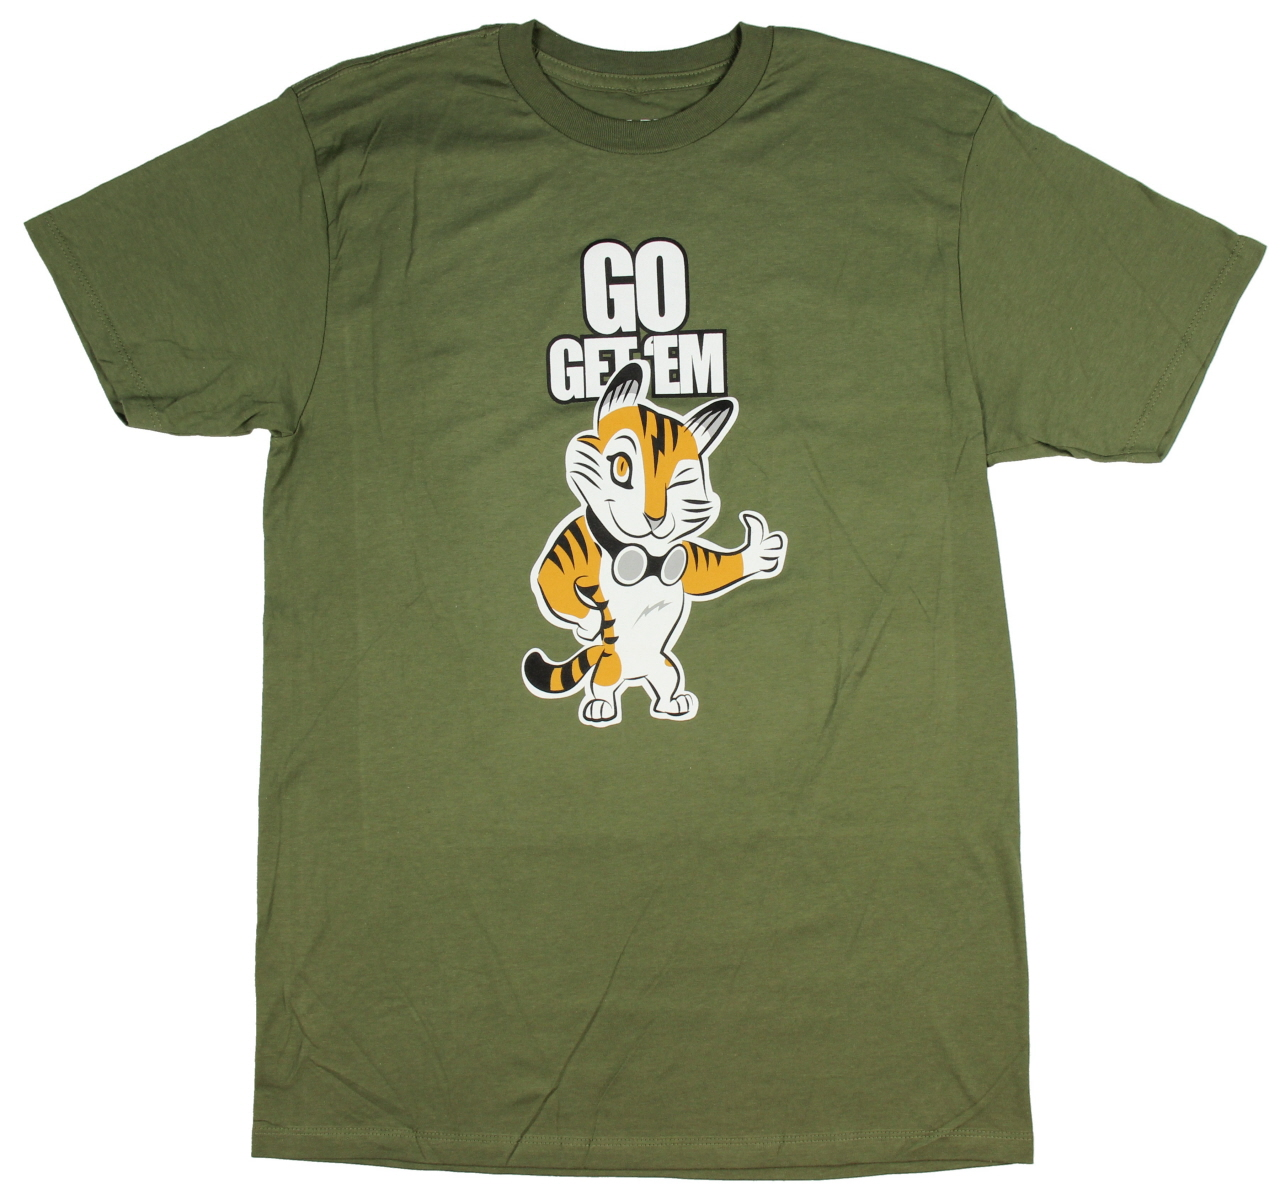 79da63ba9 This officially licensed adult tee is designed to look like Poindexter s nerd  shirt. Features a high quality front graphic saying Go Get  Em Tiger.